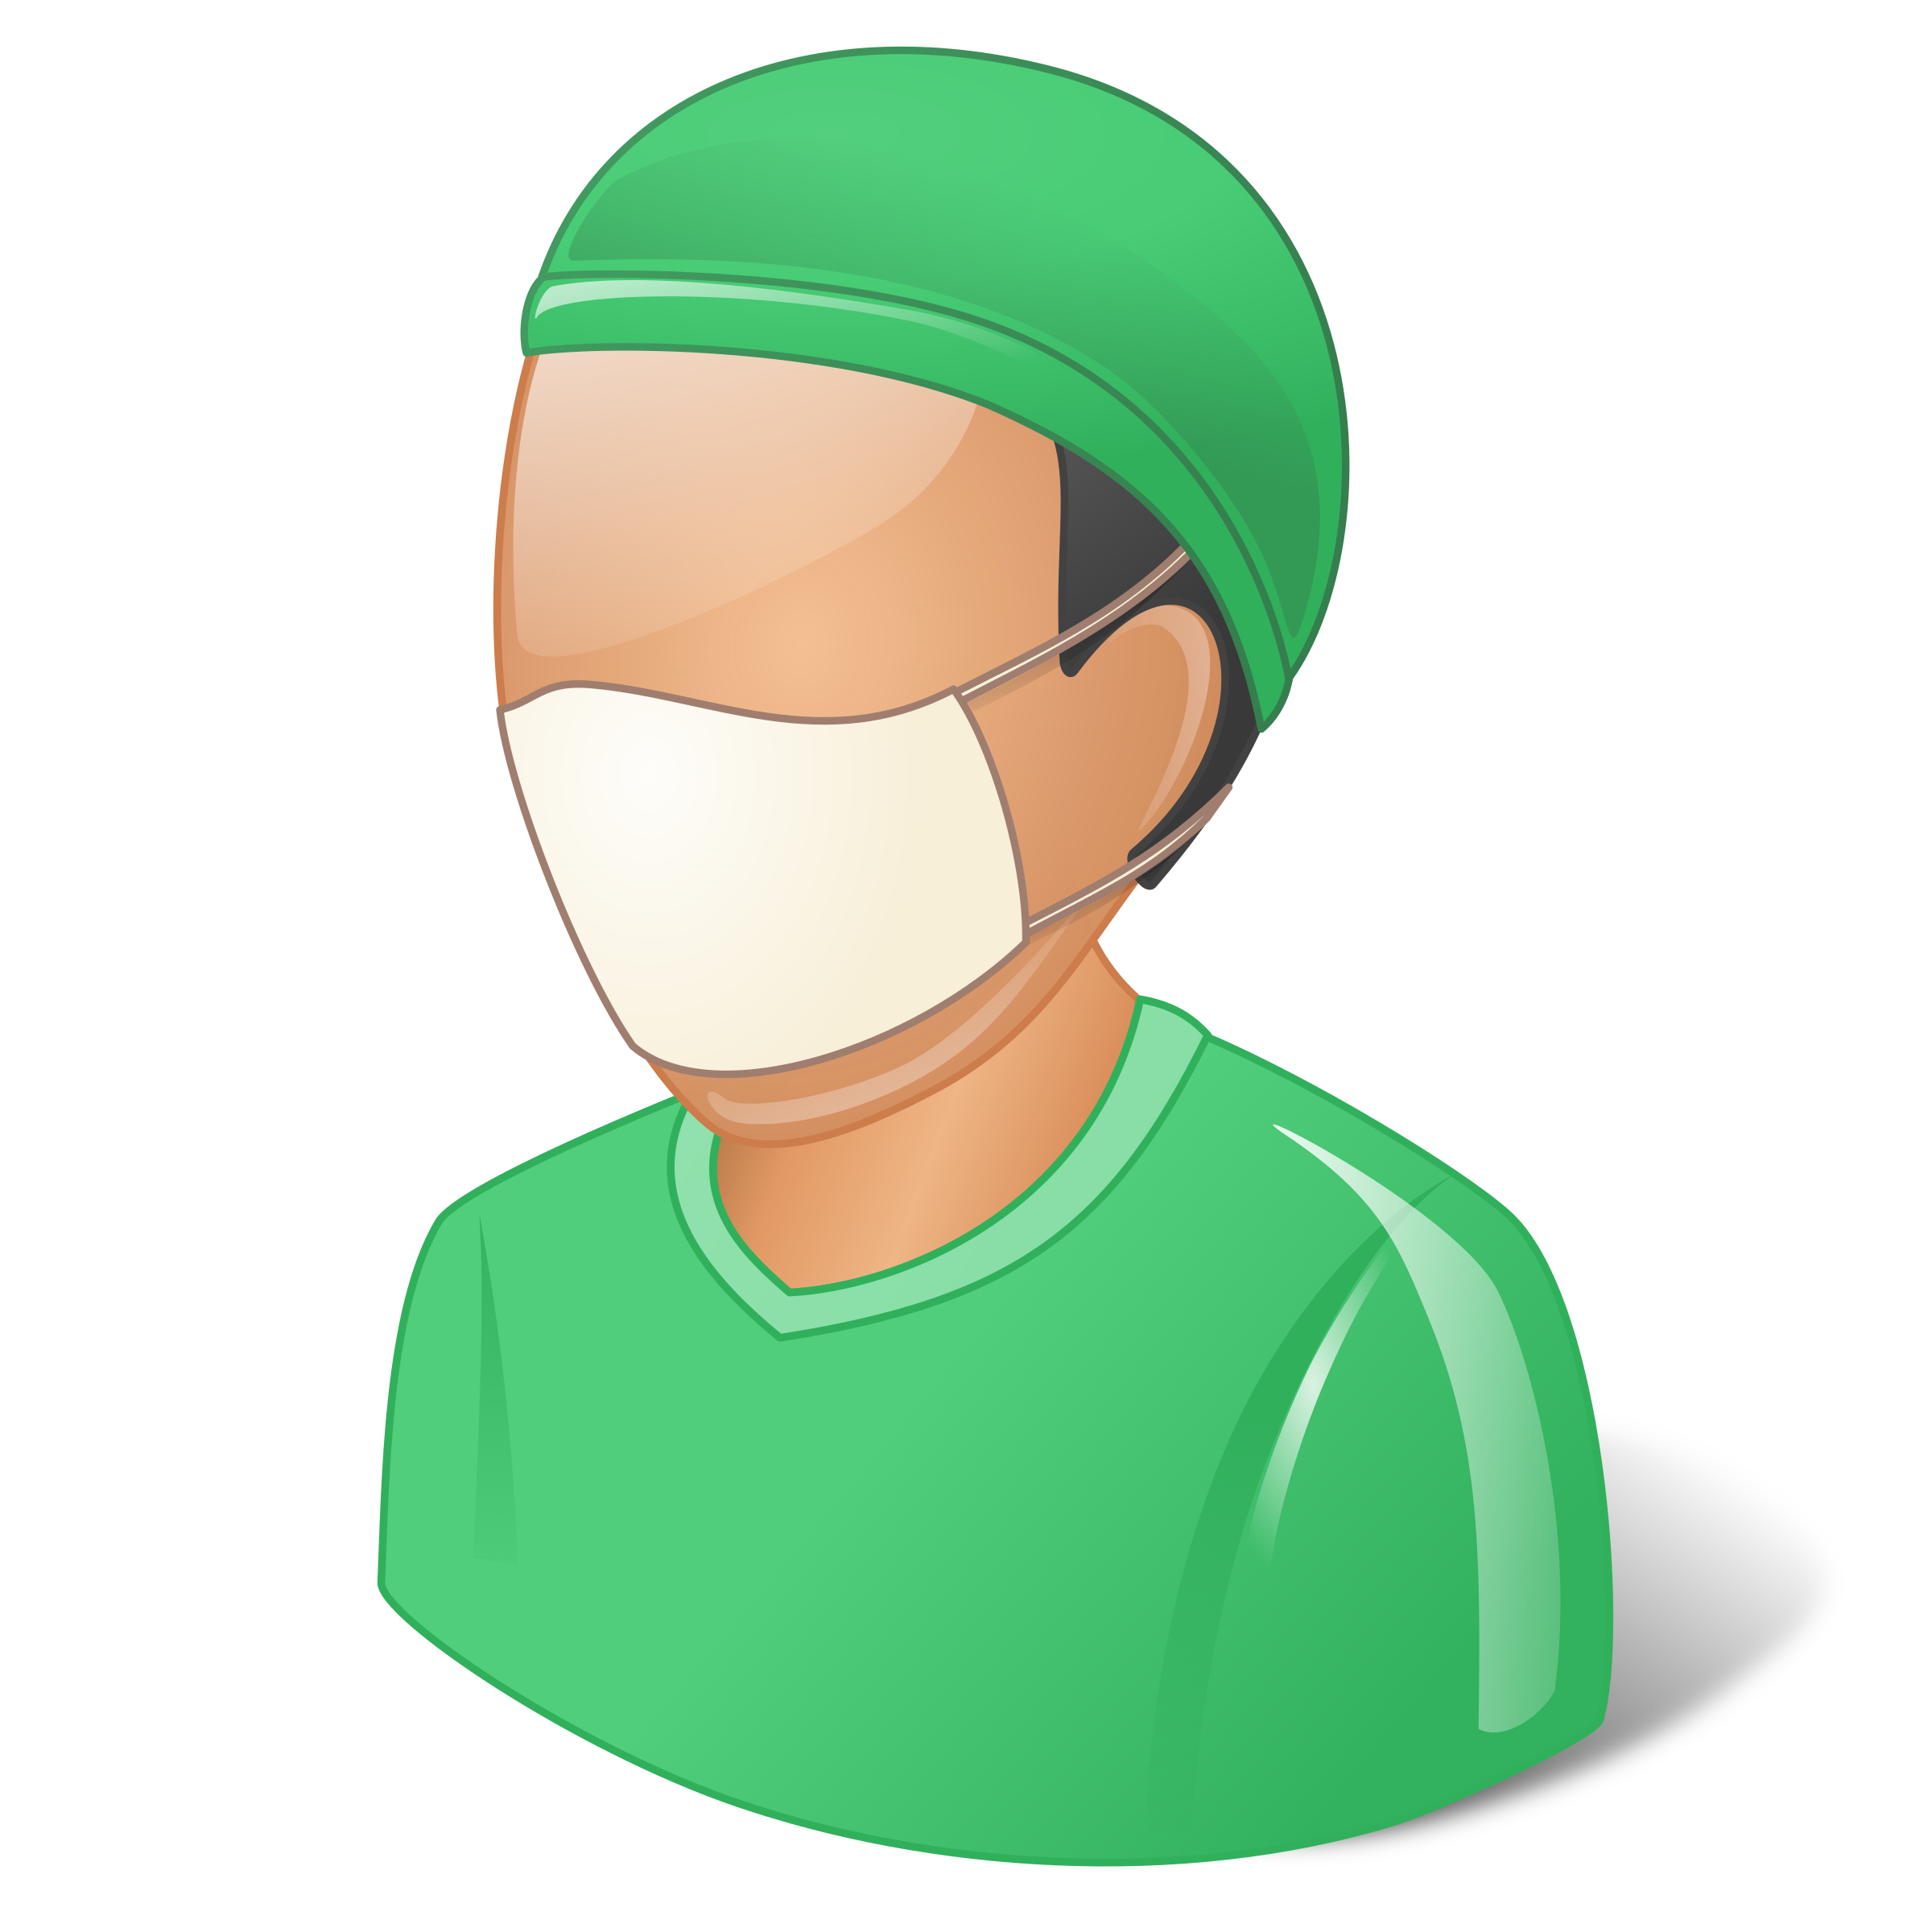 Surgery drawing surgeon. Free symbol cliparts download